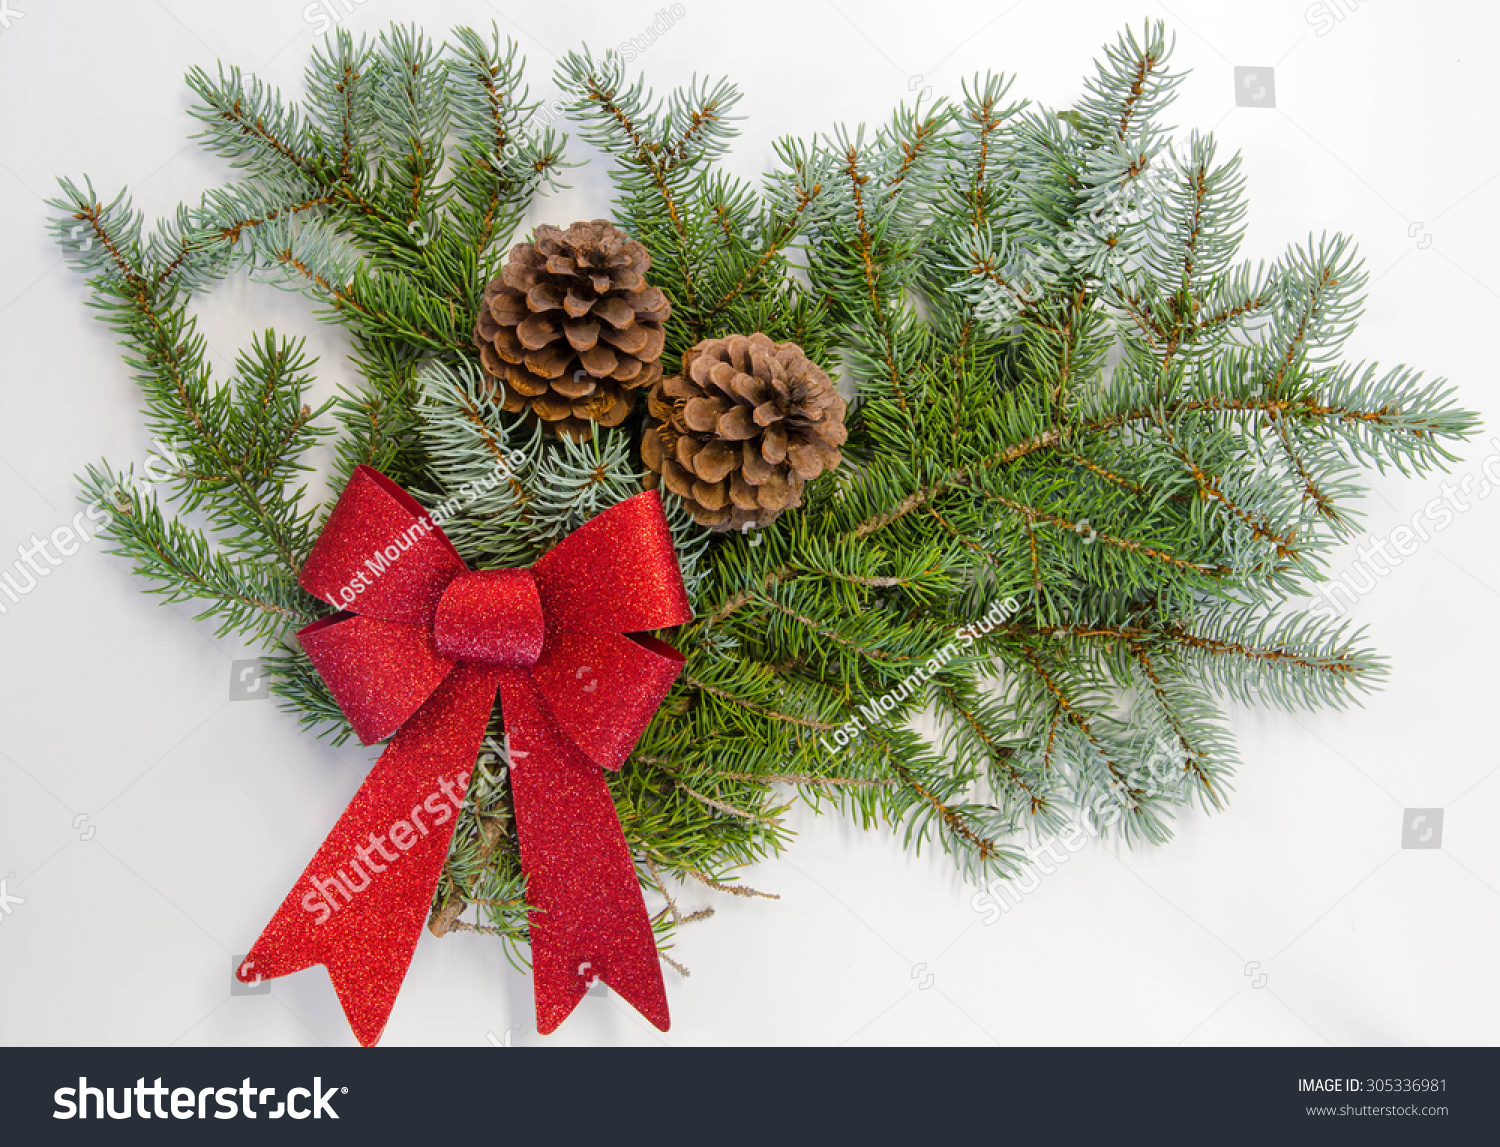 A Greenery Christmas Bough With A Red Bow And Pine Cones Stock ...